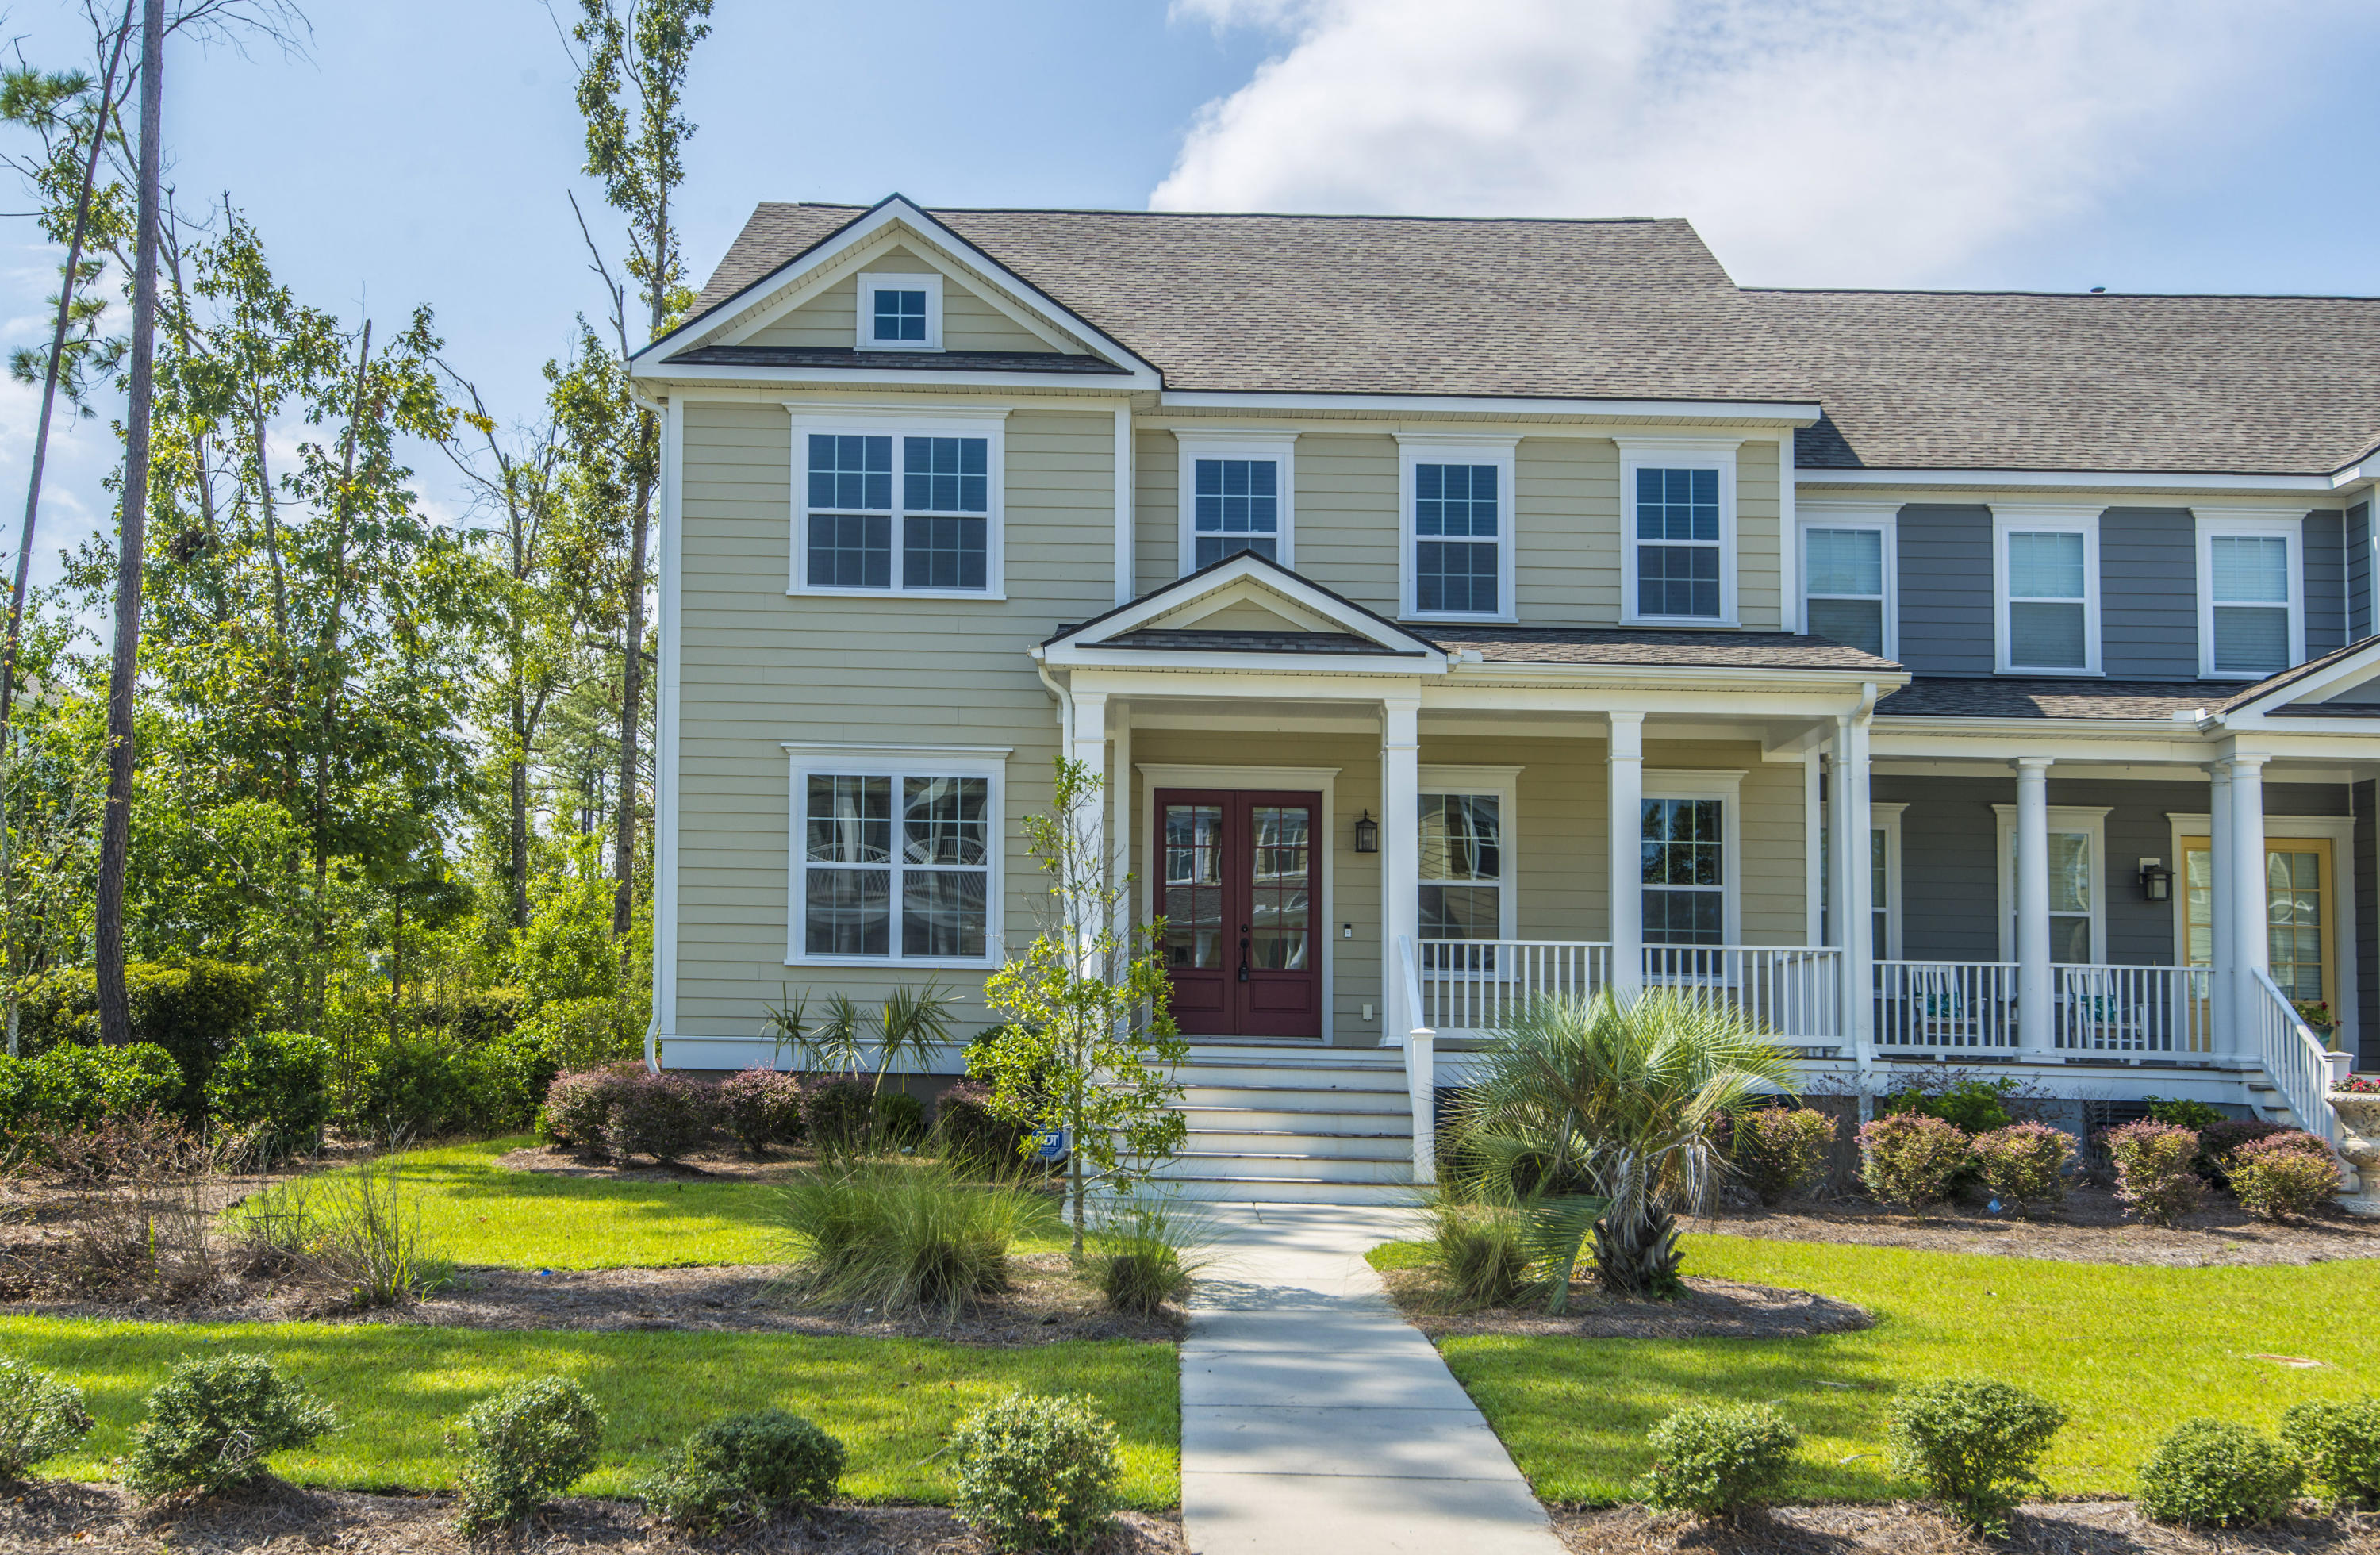 Dunes West Homes For Sale - 3172 Sturbridge, Mount Pleasant, SC - 19